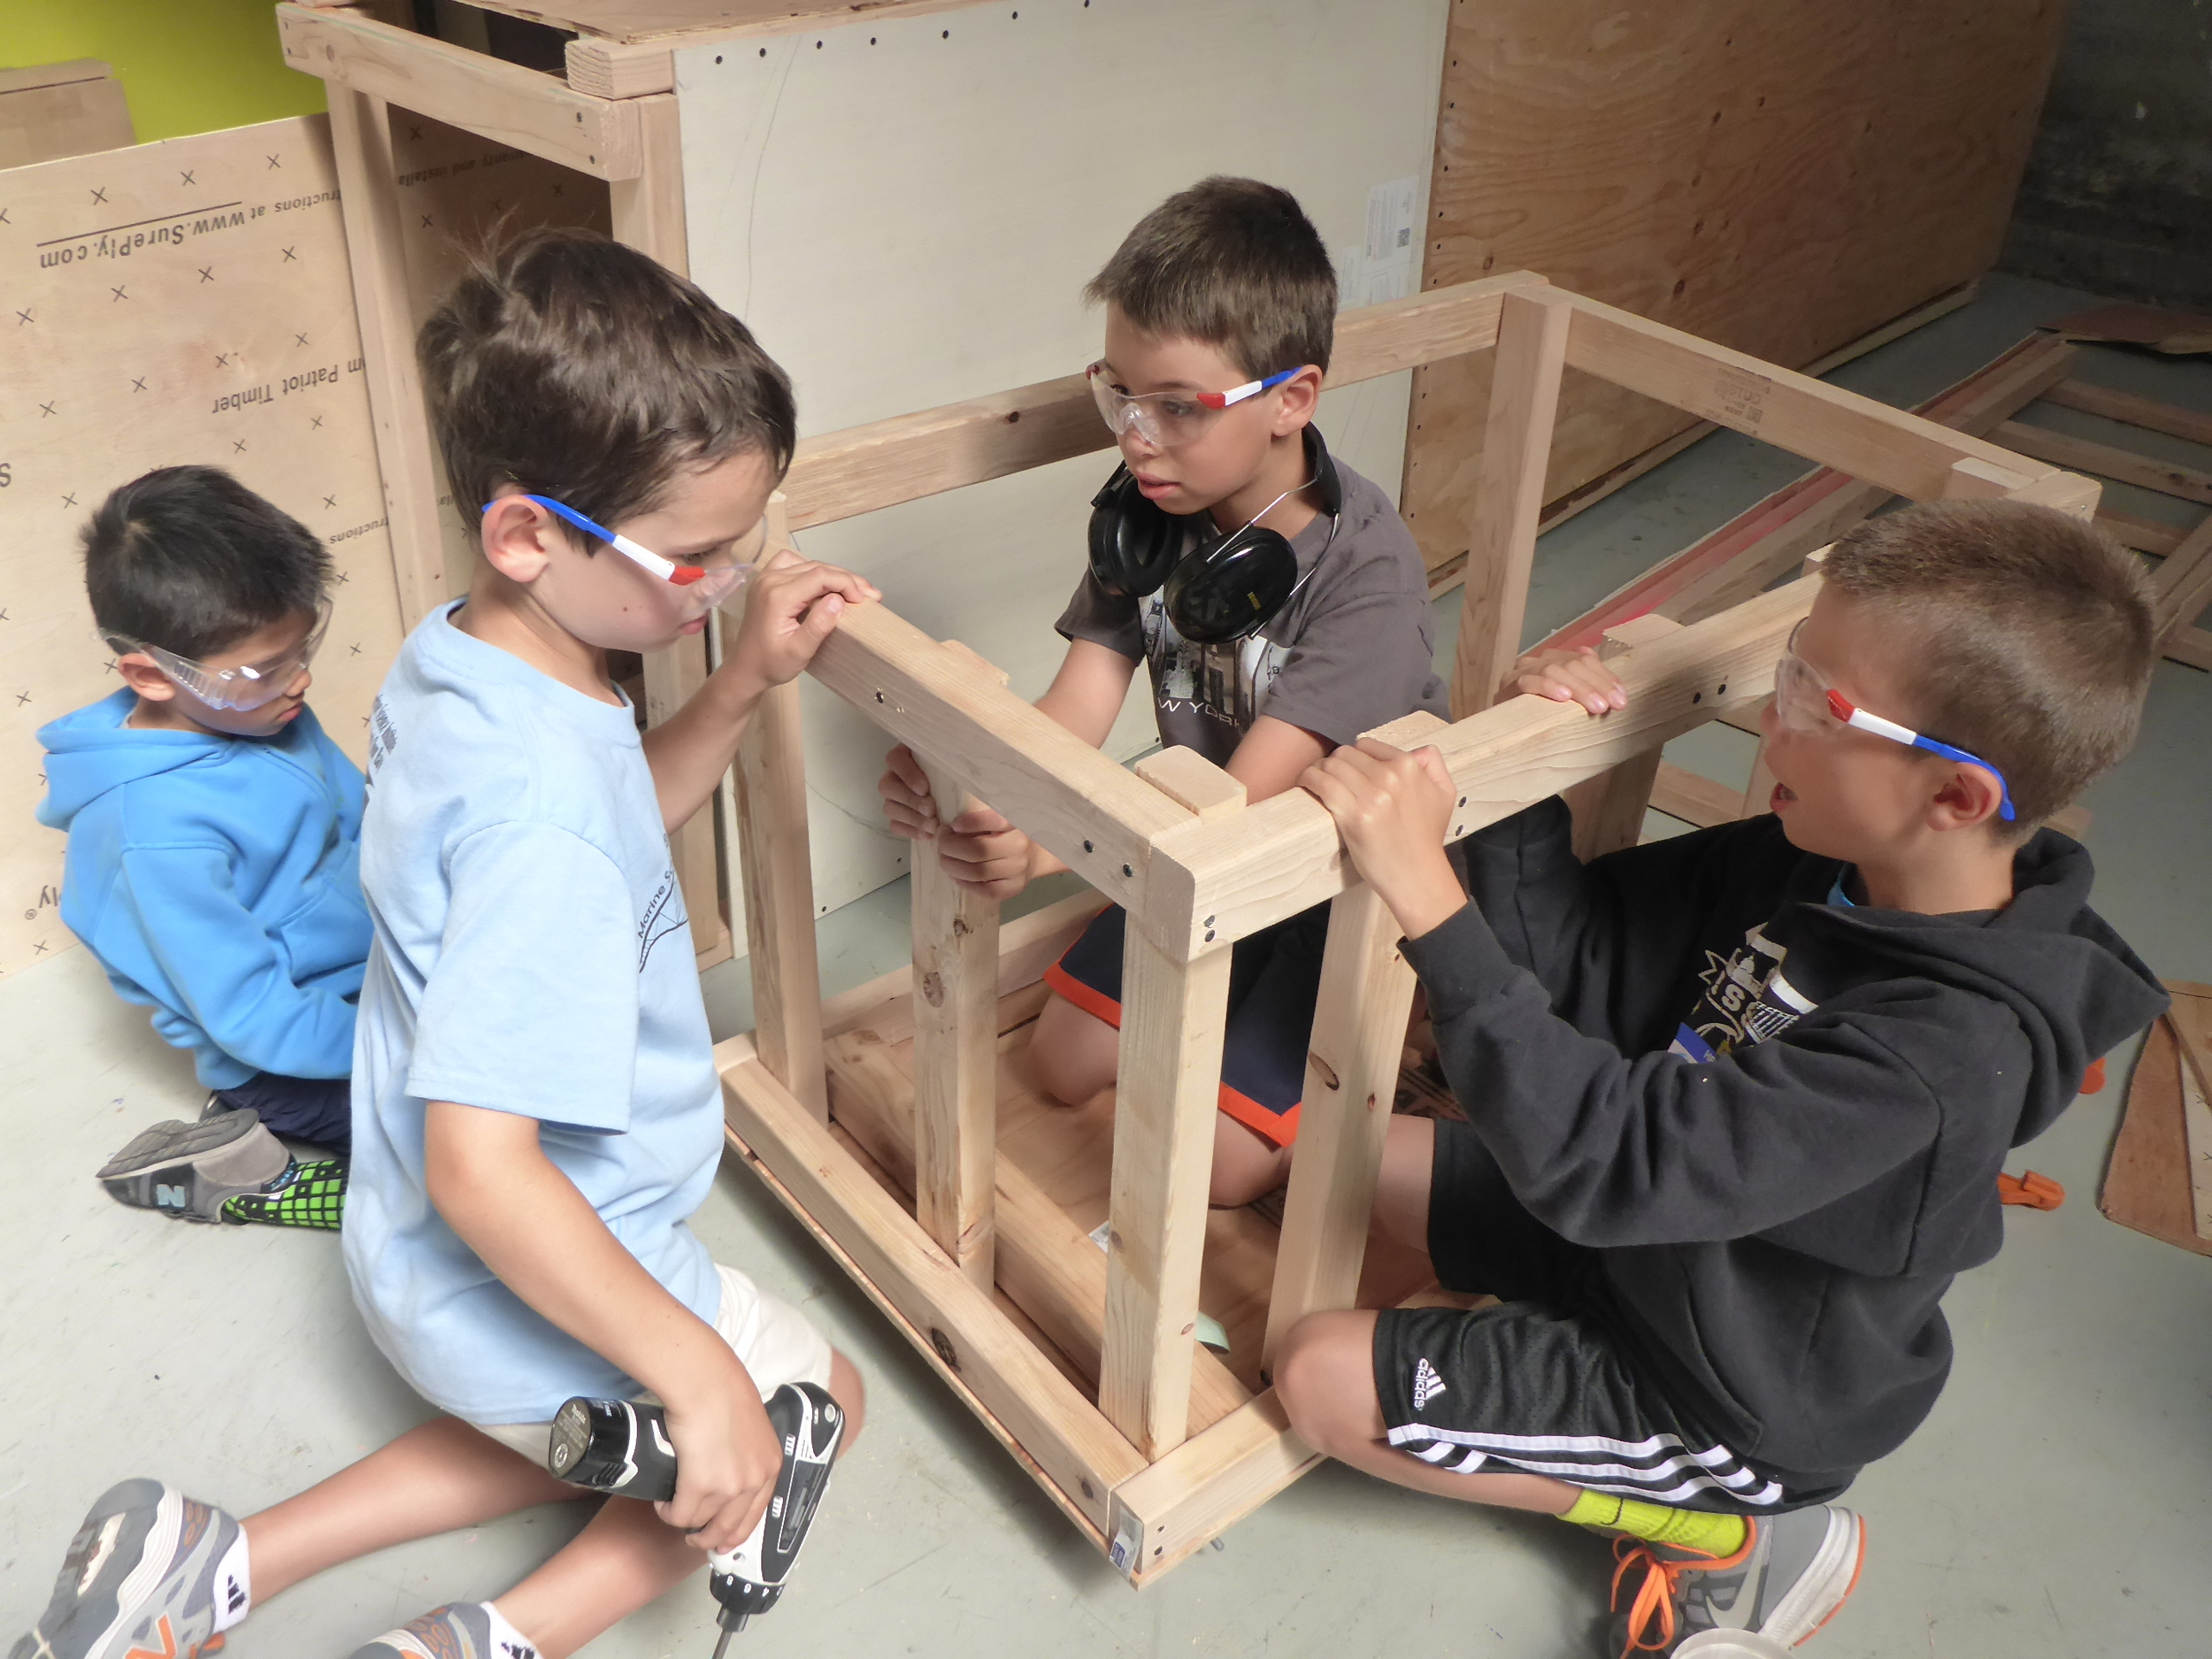 Tinkerers collaborating as they build